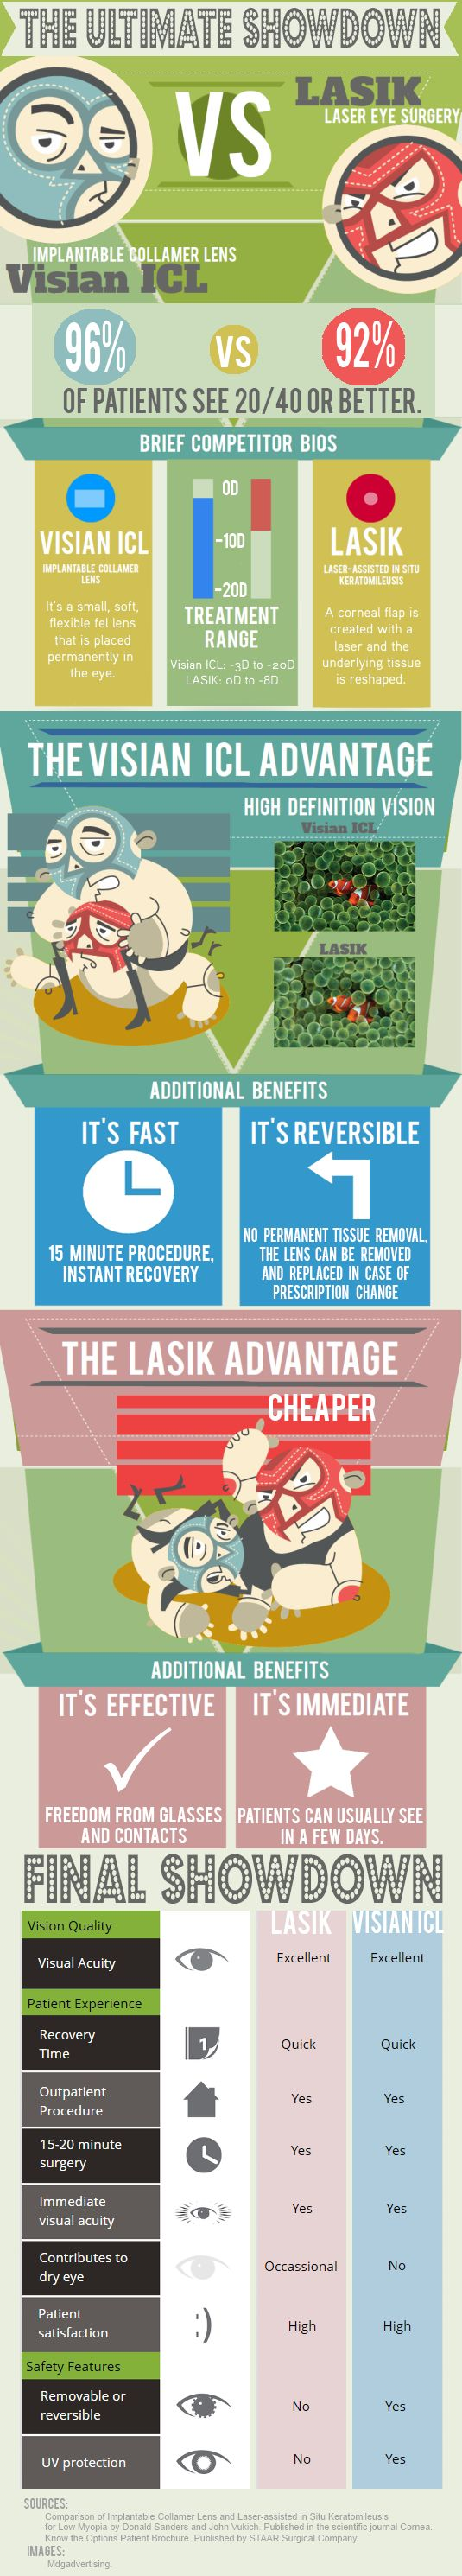 Infographic comparing the Visian ICL Implantable Collamer Lens to LASIK.